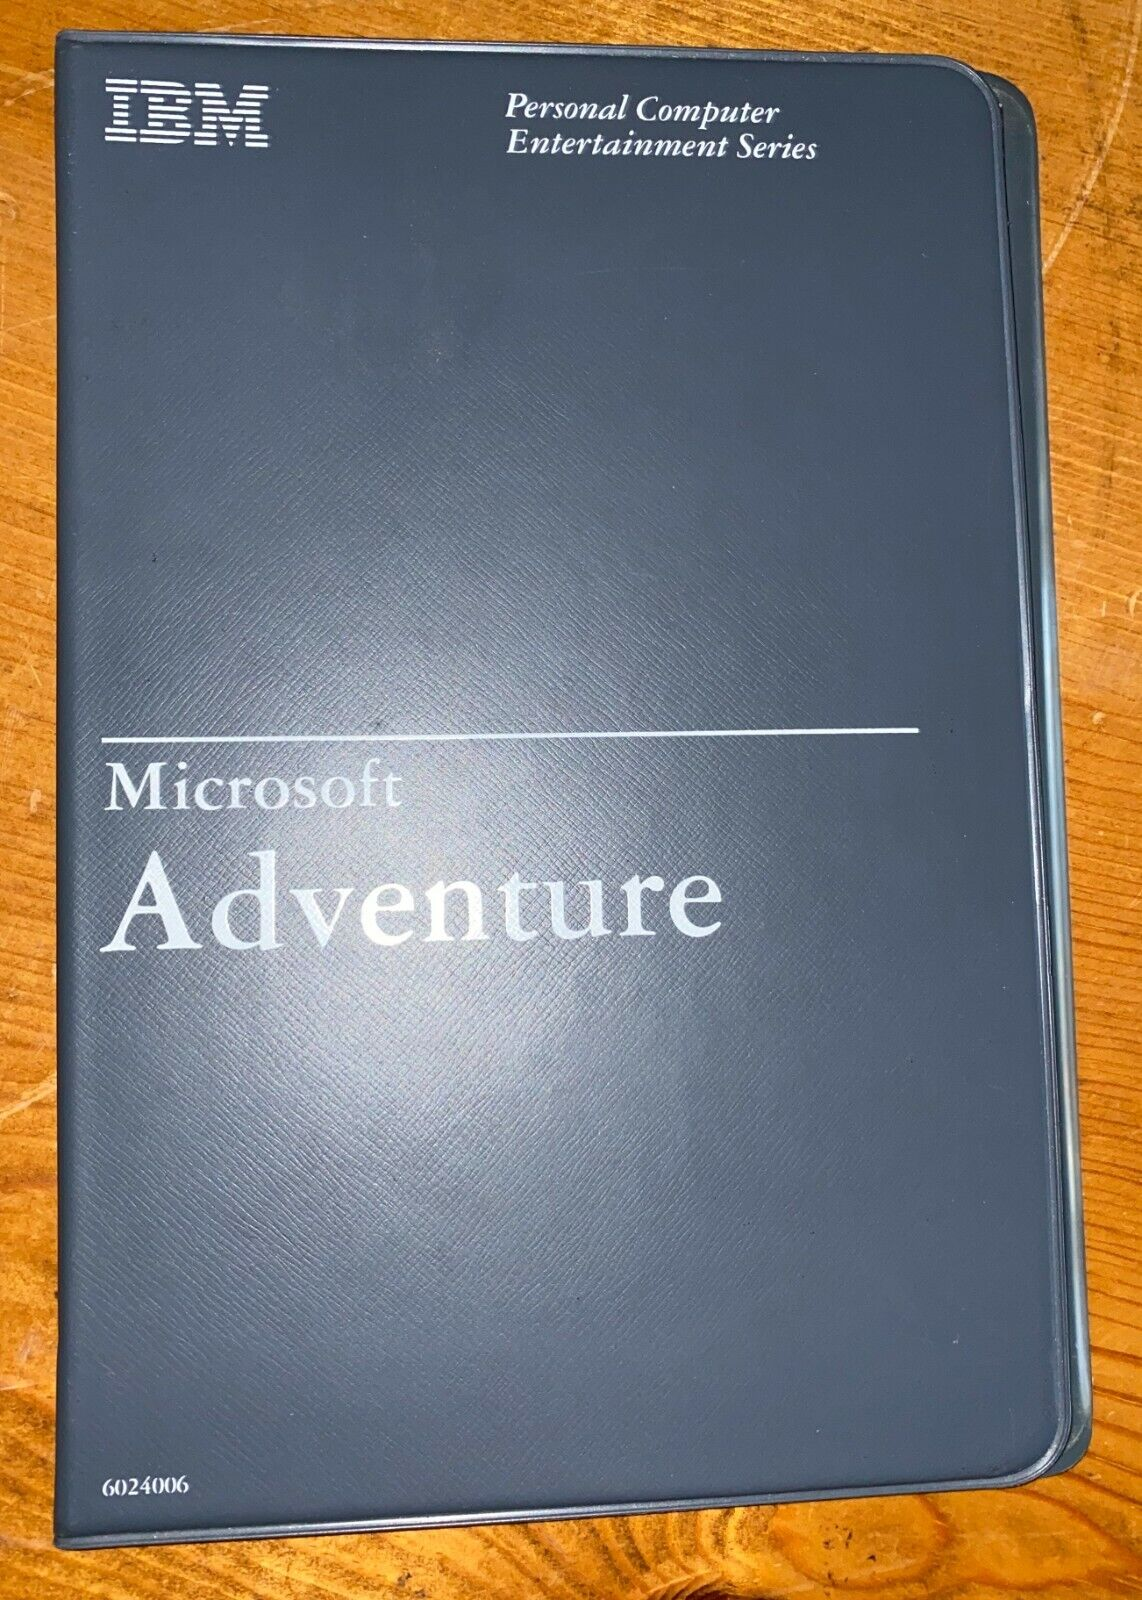 "Computer Games - Rare Microsoft IBM Adventure PC and Compatibles Computer Game 5.25"" Floppy Disk"